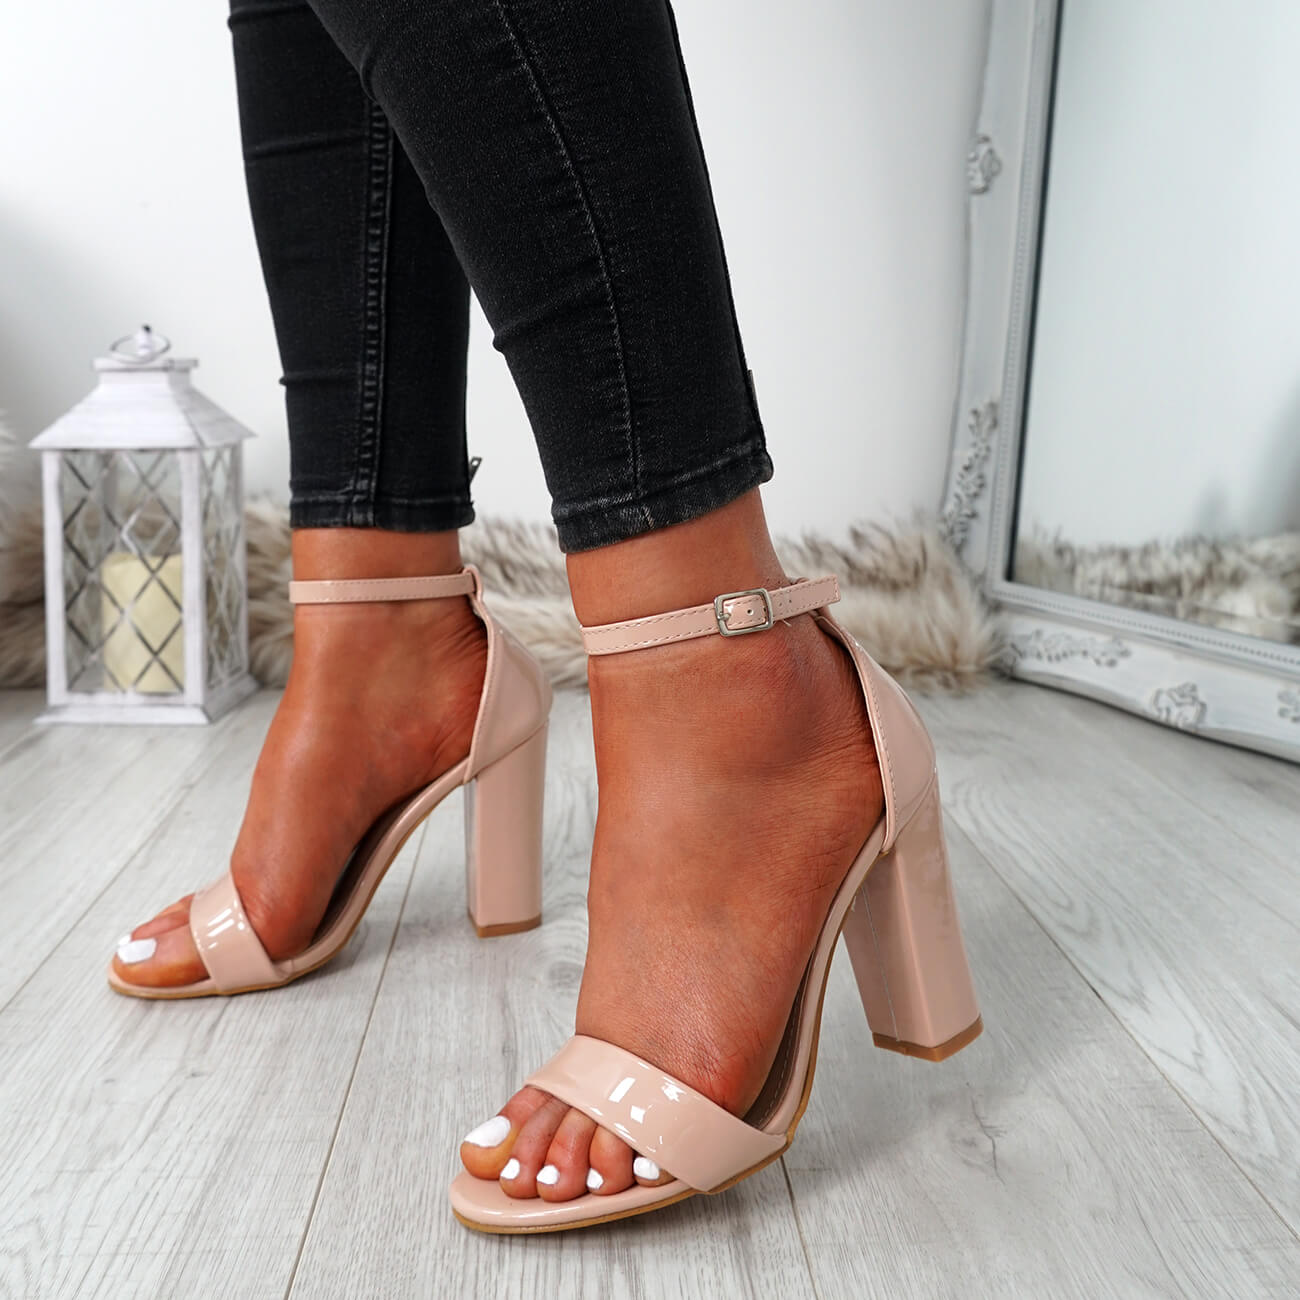 WOMENS-LADIES-ANKLE-STRAP-HIGH-BLOCK-HEEL-SANDALS-PEEP-TOE-PARTY-SHOES-SIZE thumbnail 18